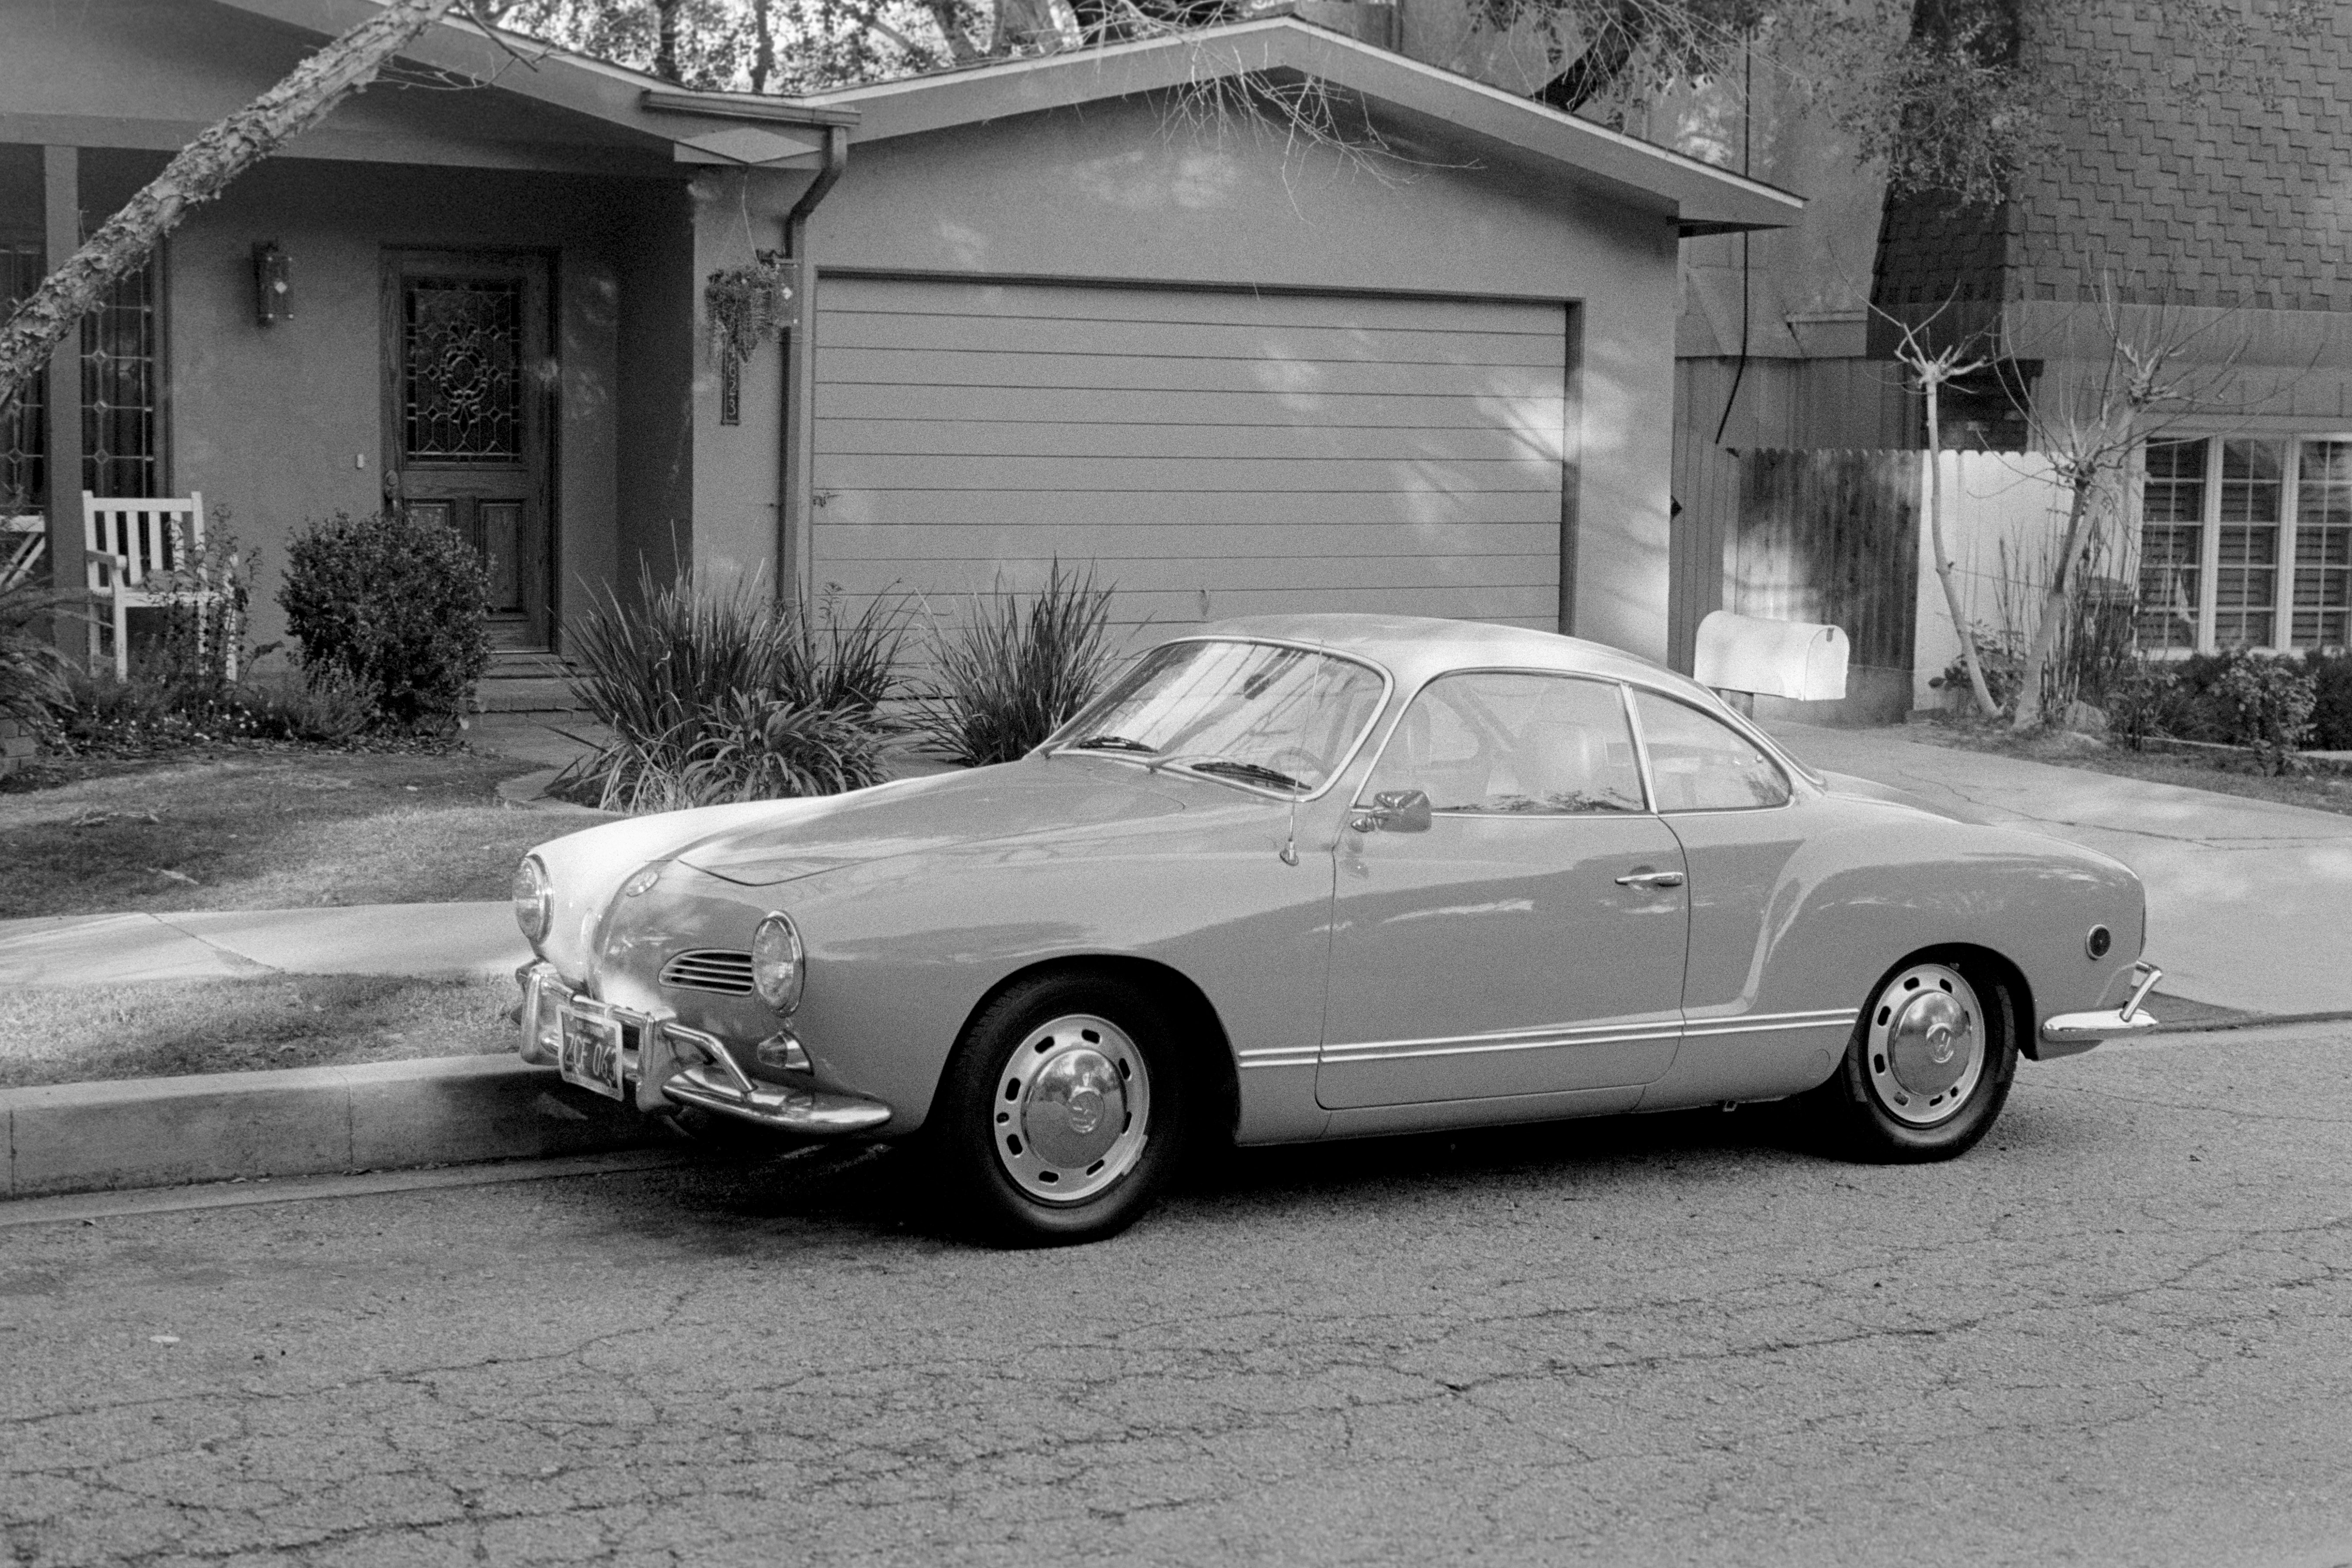 classic coupe park near house in grayscale photo